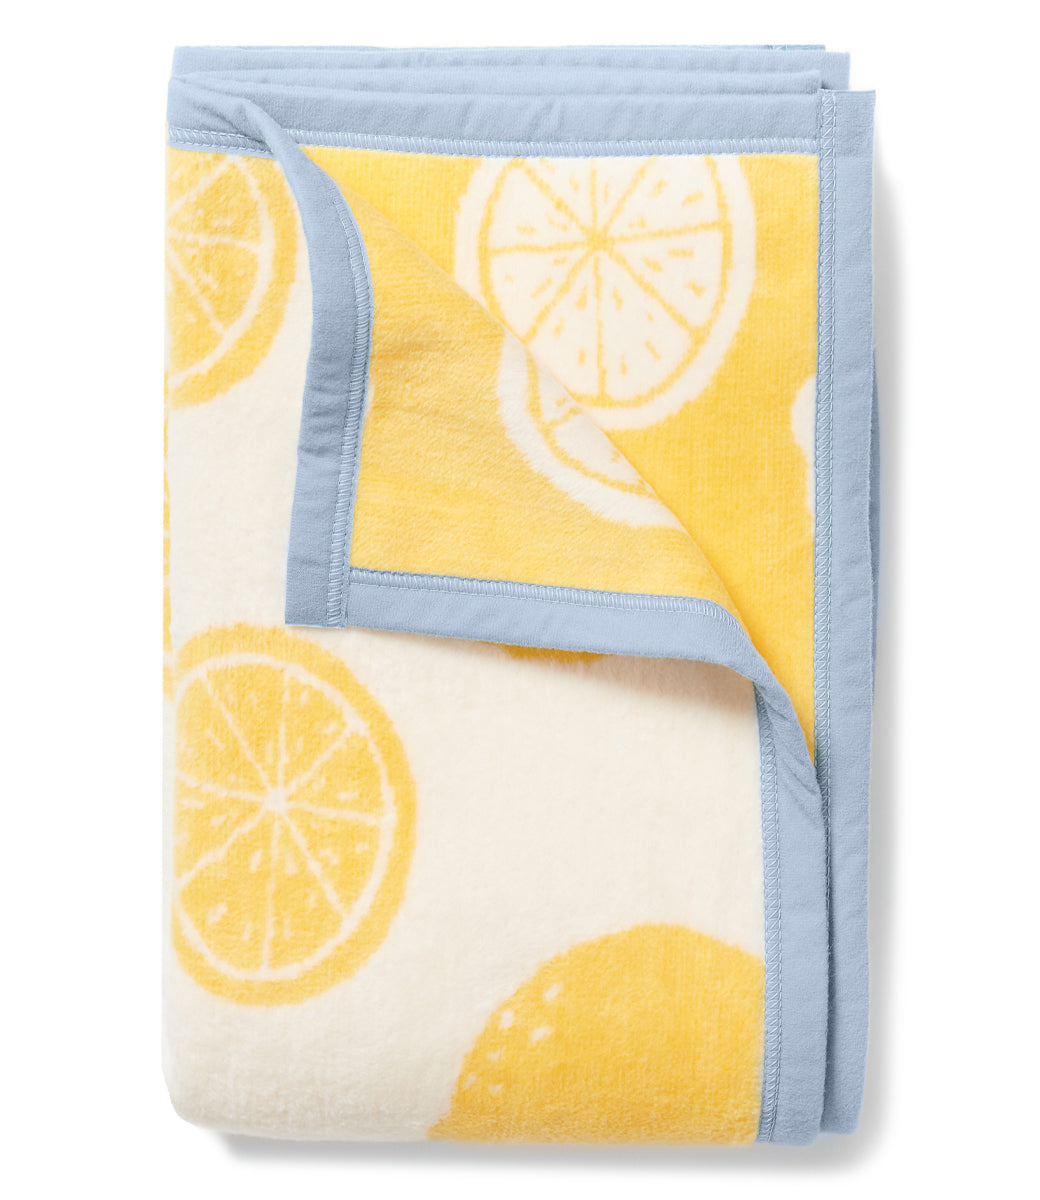 The Amalfi by Lemon Stripes Midi Blanket